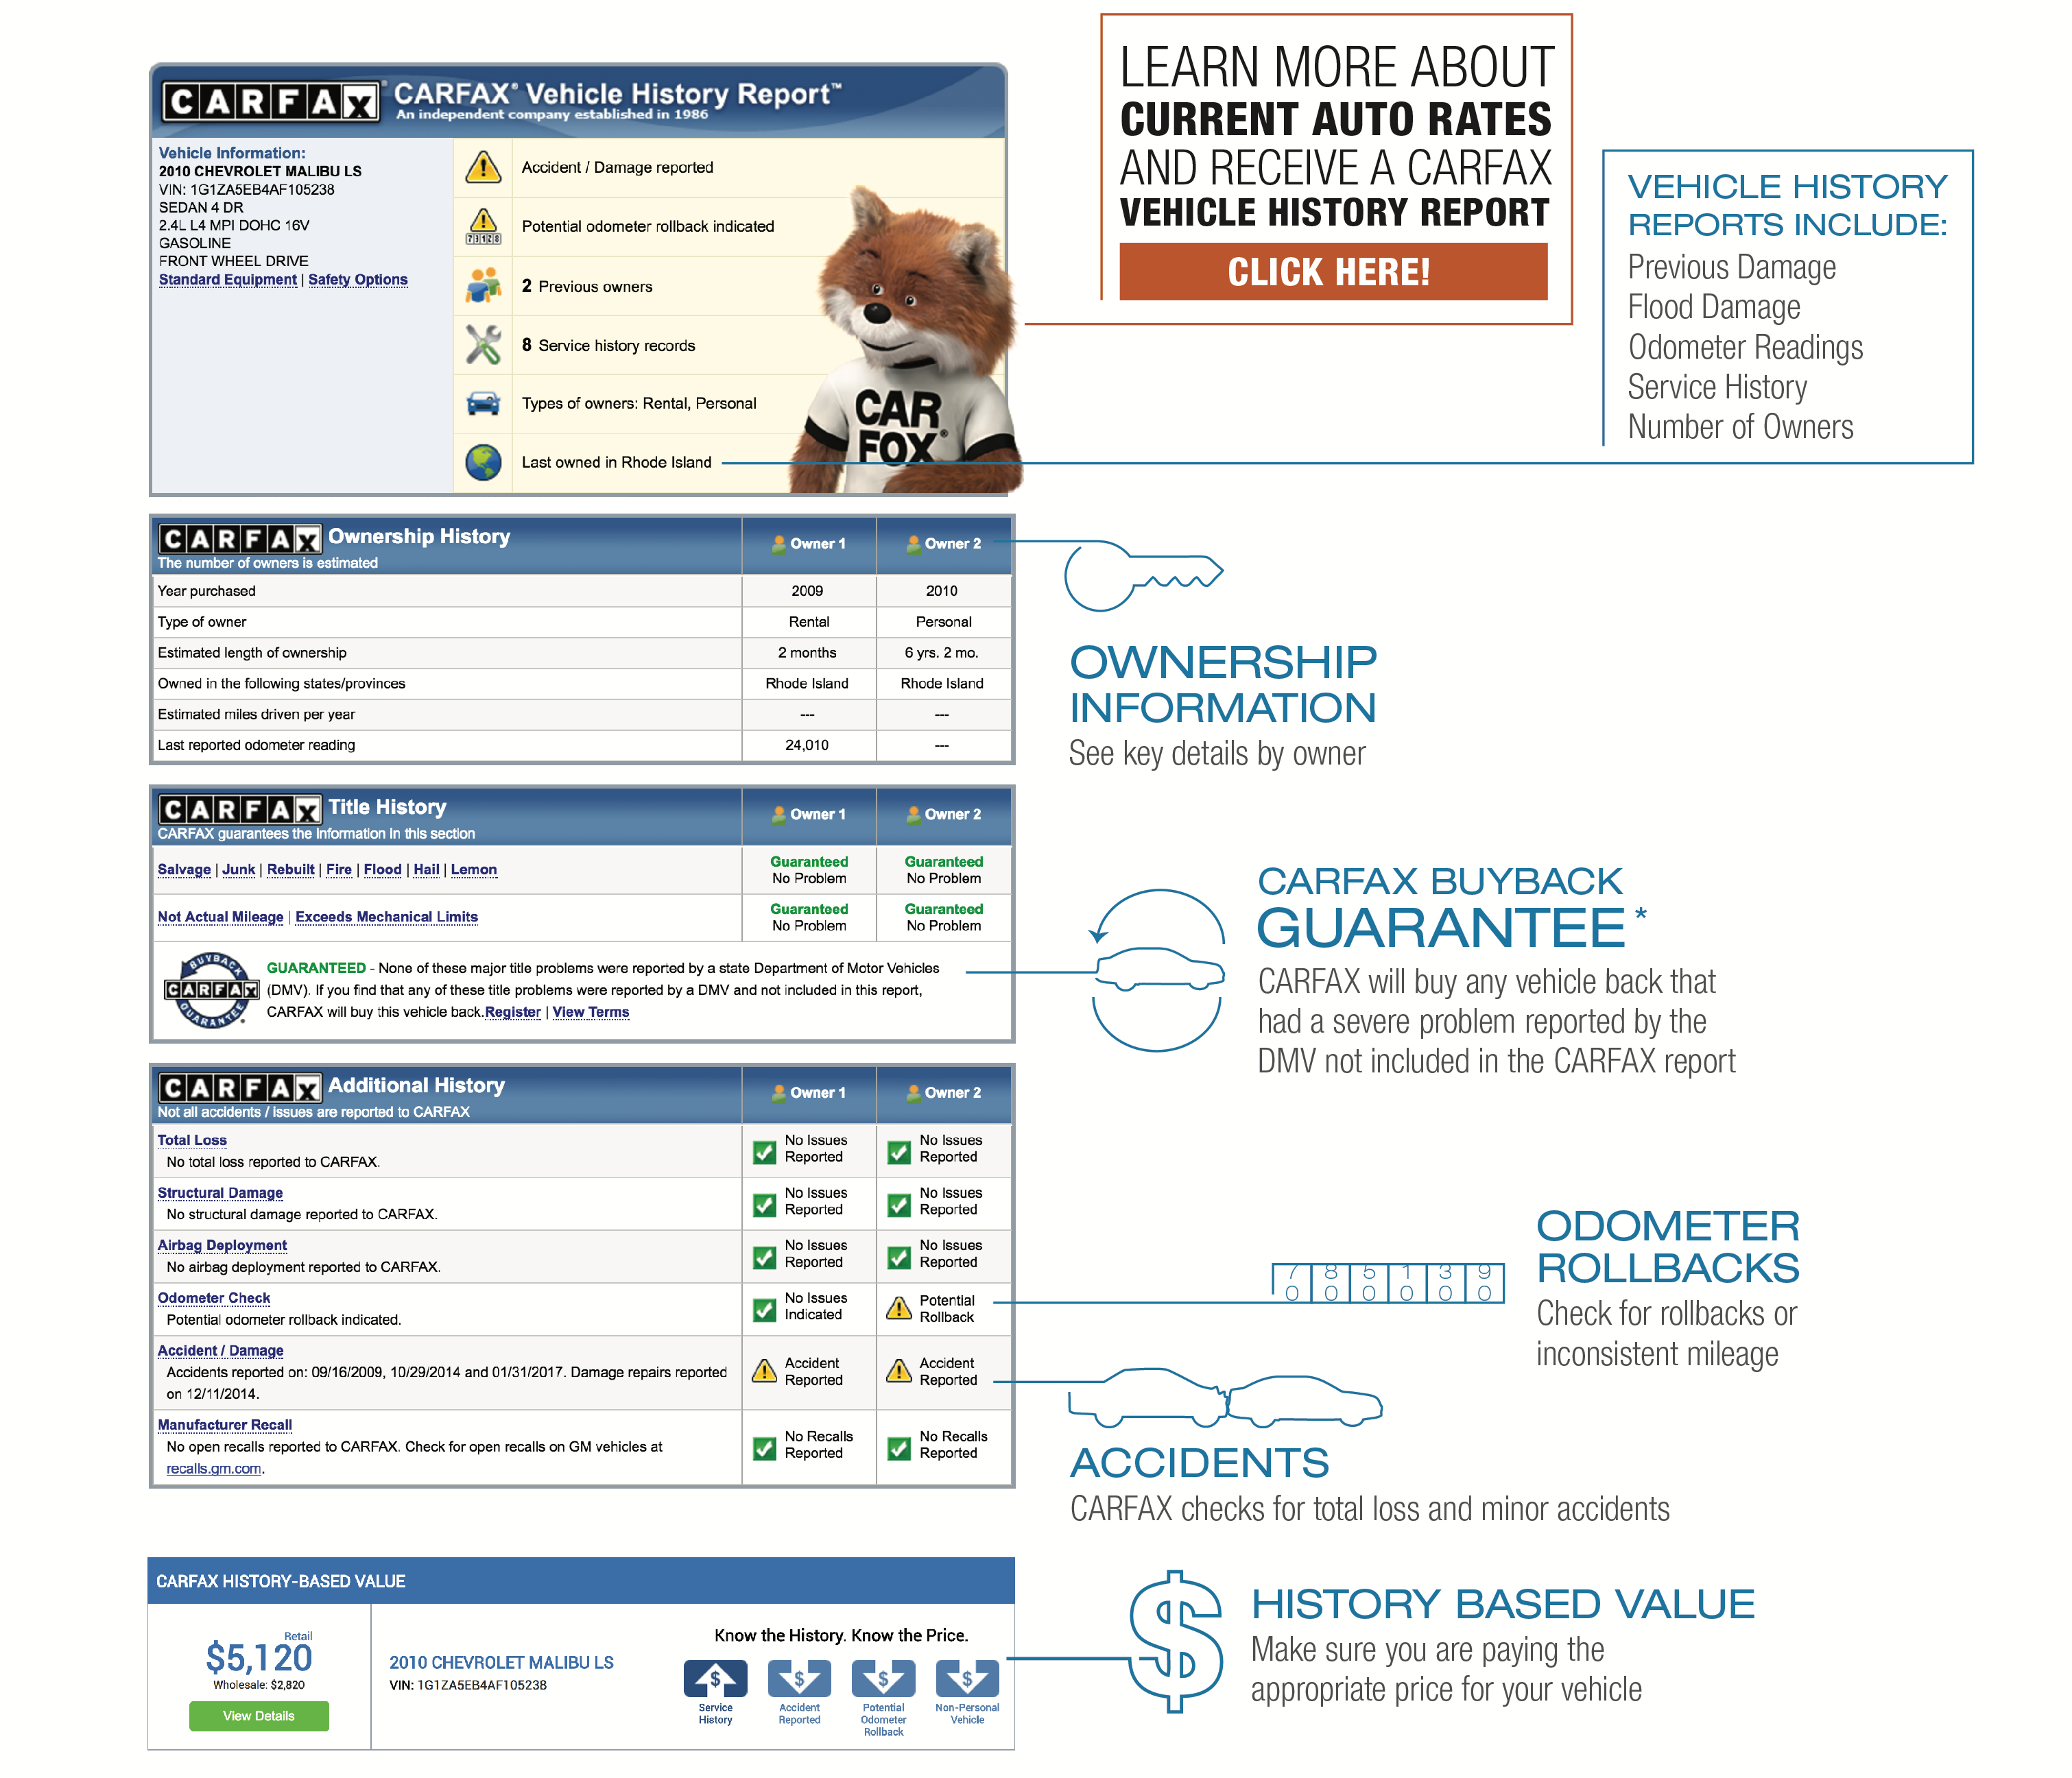 Free Carfax History Unique Carfax Banking and Insurance Group More Information Better Decisions